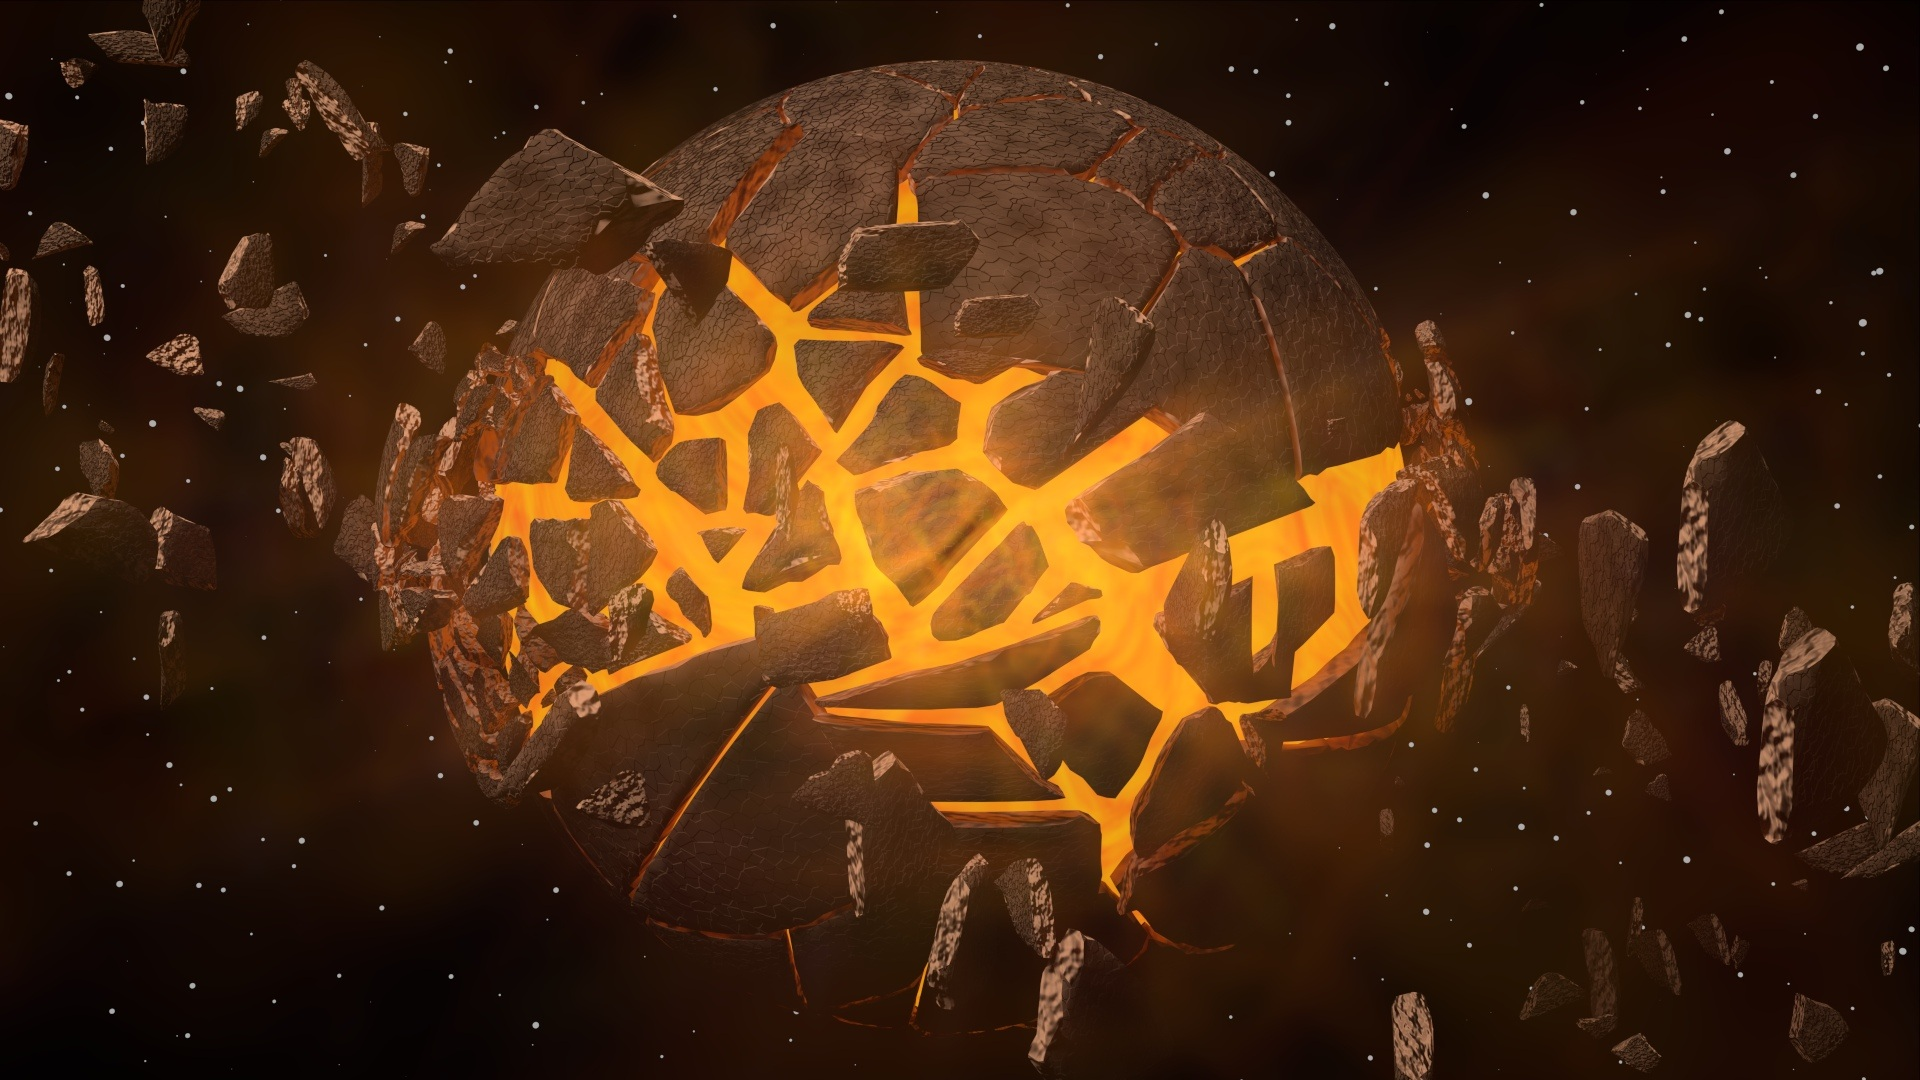 Yellow Planet Explosion HD Wallpaper   Wallpapers.gg